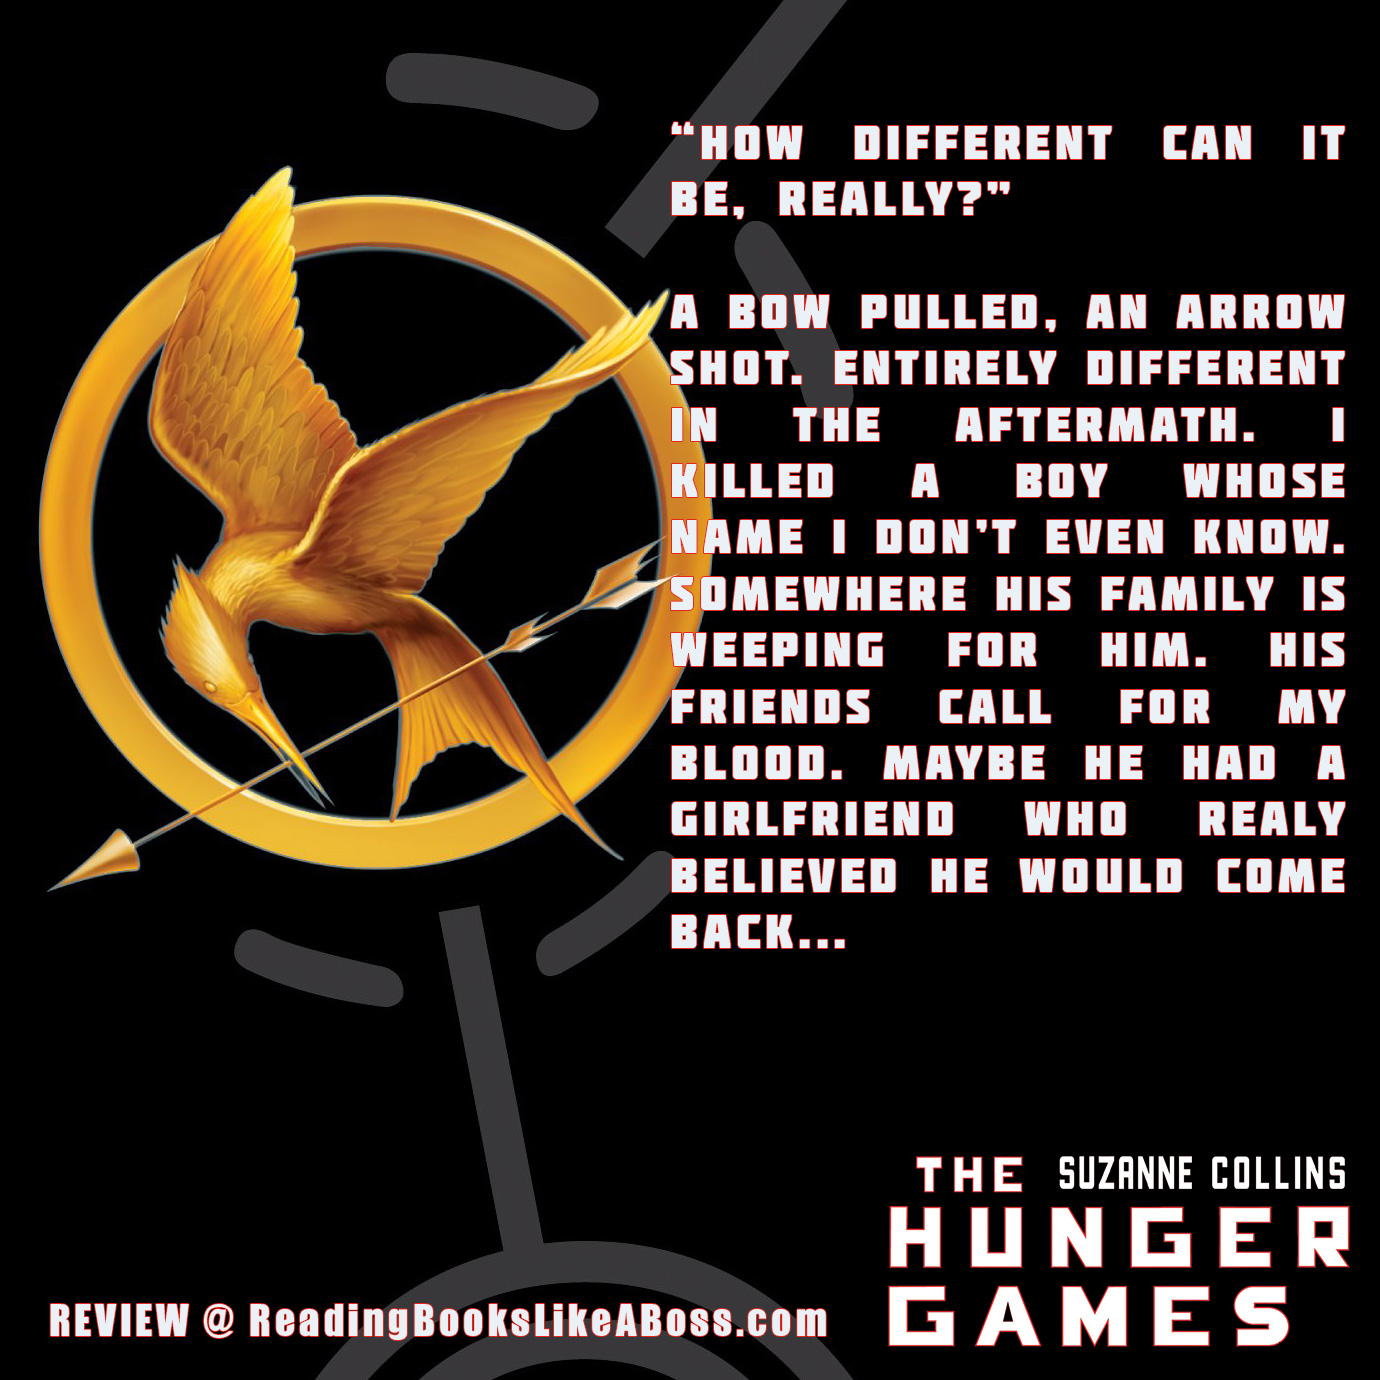 https://readingbookslikeaboss.com/wp-content/uploads/2017/10/The-Hunger-Games-Teaser.jpg